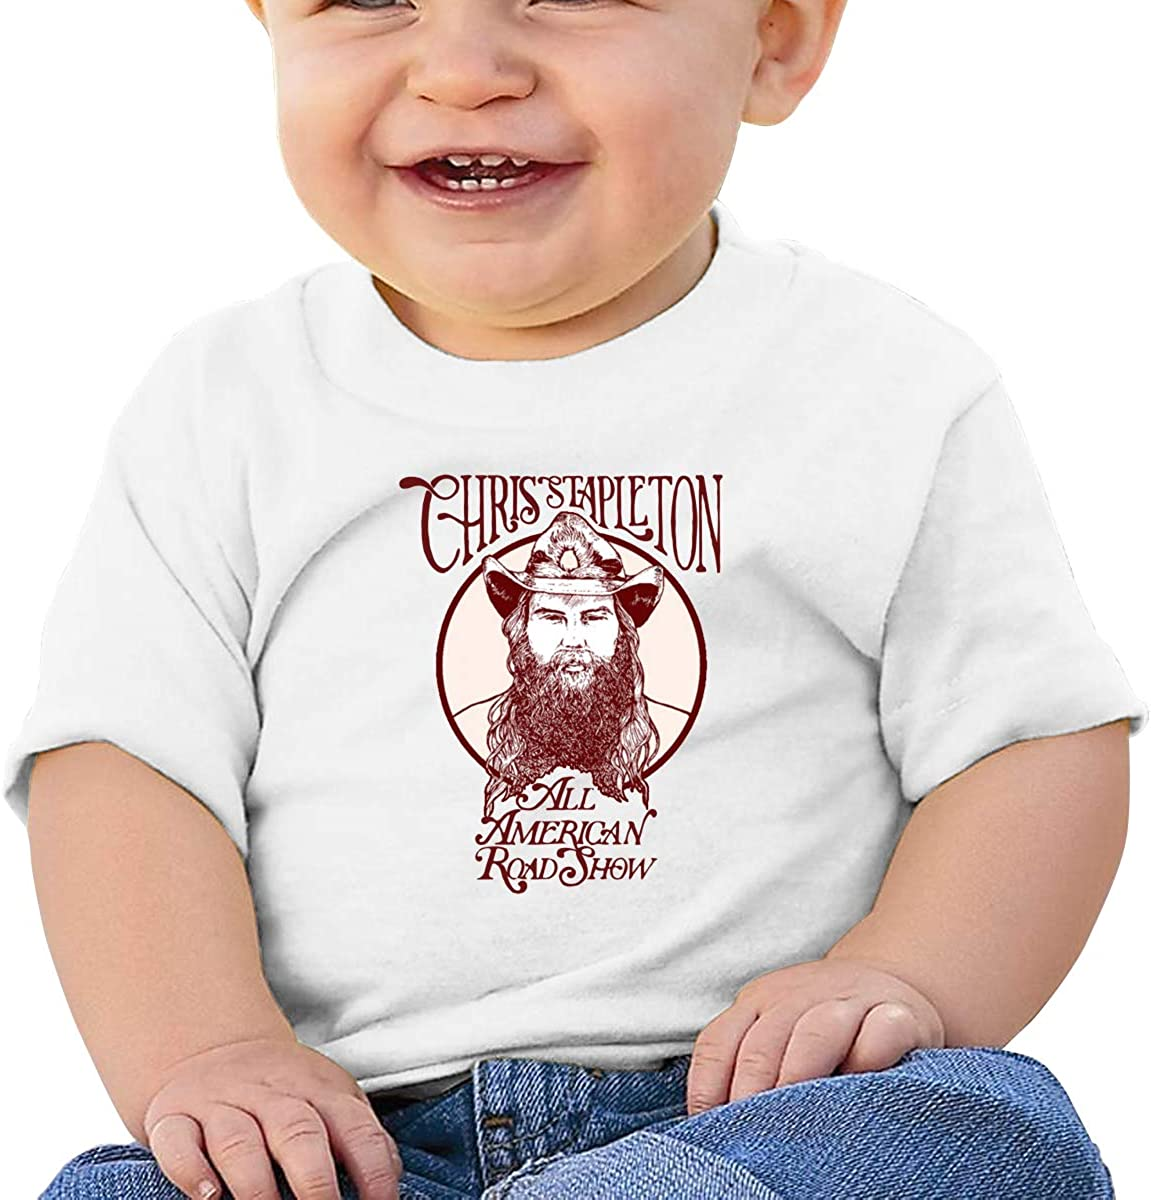 HAOHIYO Baby Chris Stapletion Traveller Shirt Toddler Cotton Tee